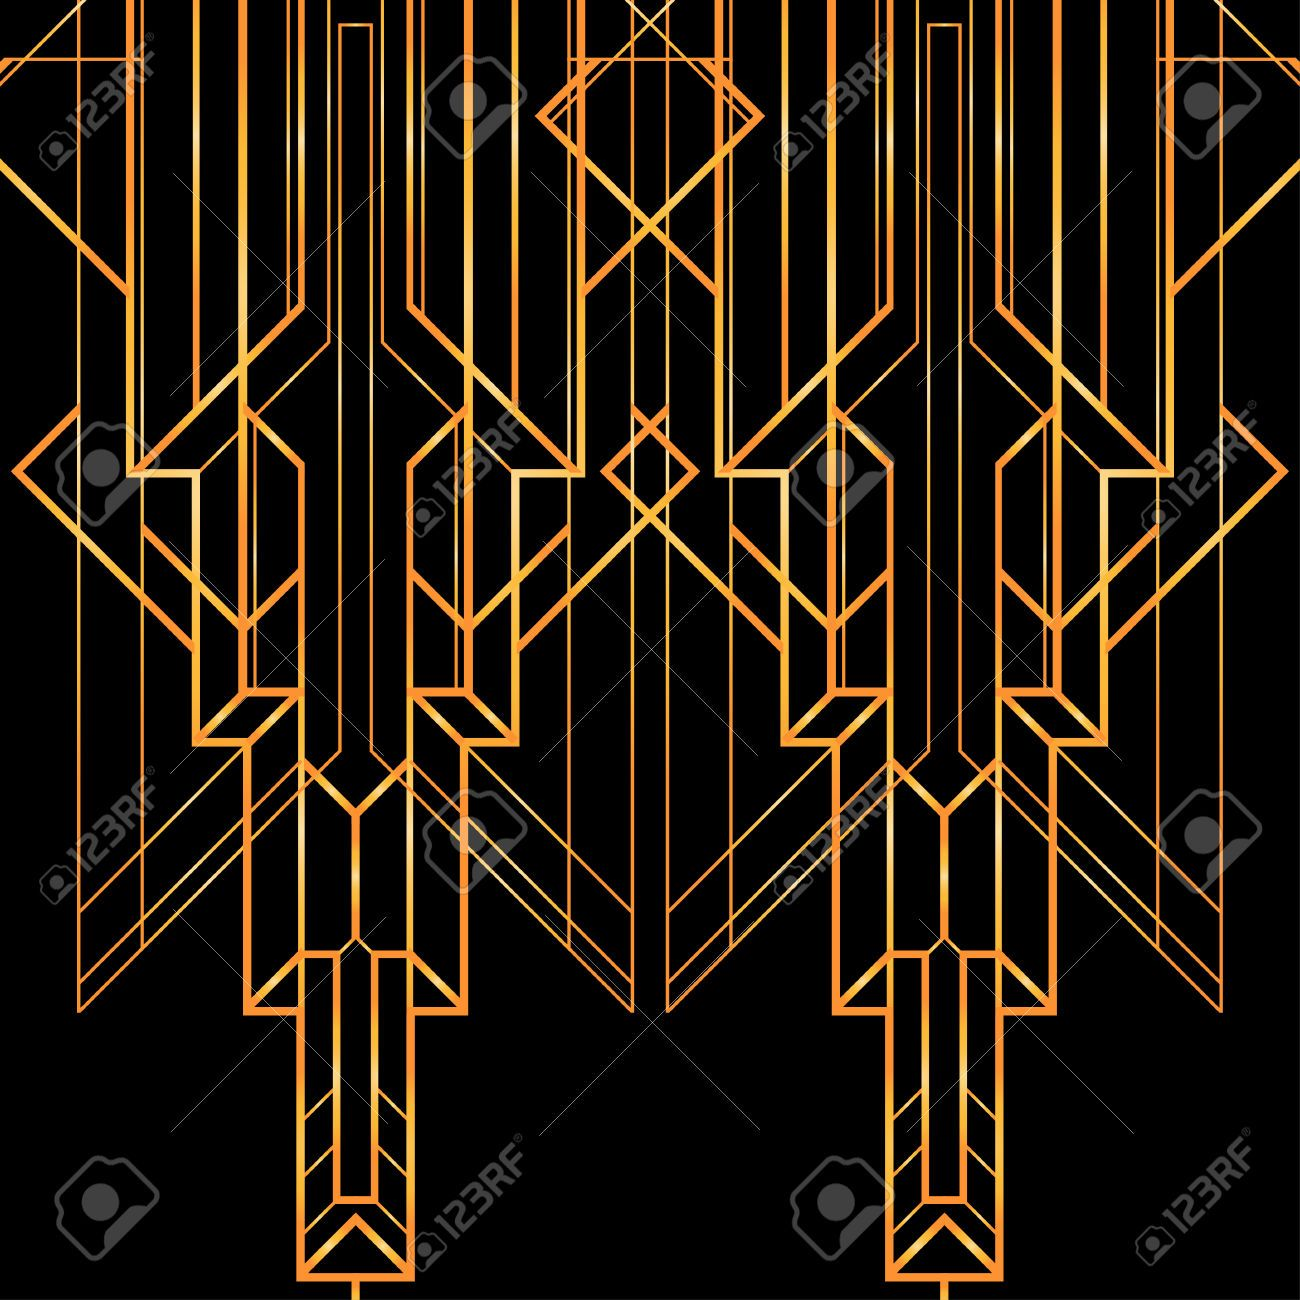 Art Deco Geometric Pattern 1920 S Style Royalty Free Cliparts Vectors And Stock Illustra Art Deco Pattern Art Deco Illustration Art Deco Geometric Patterns